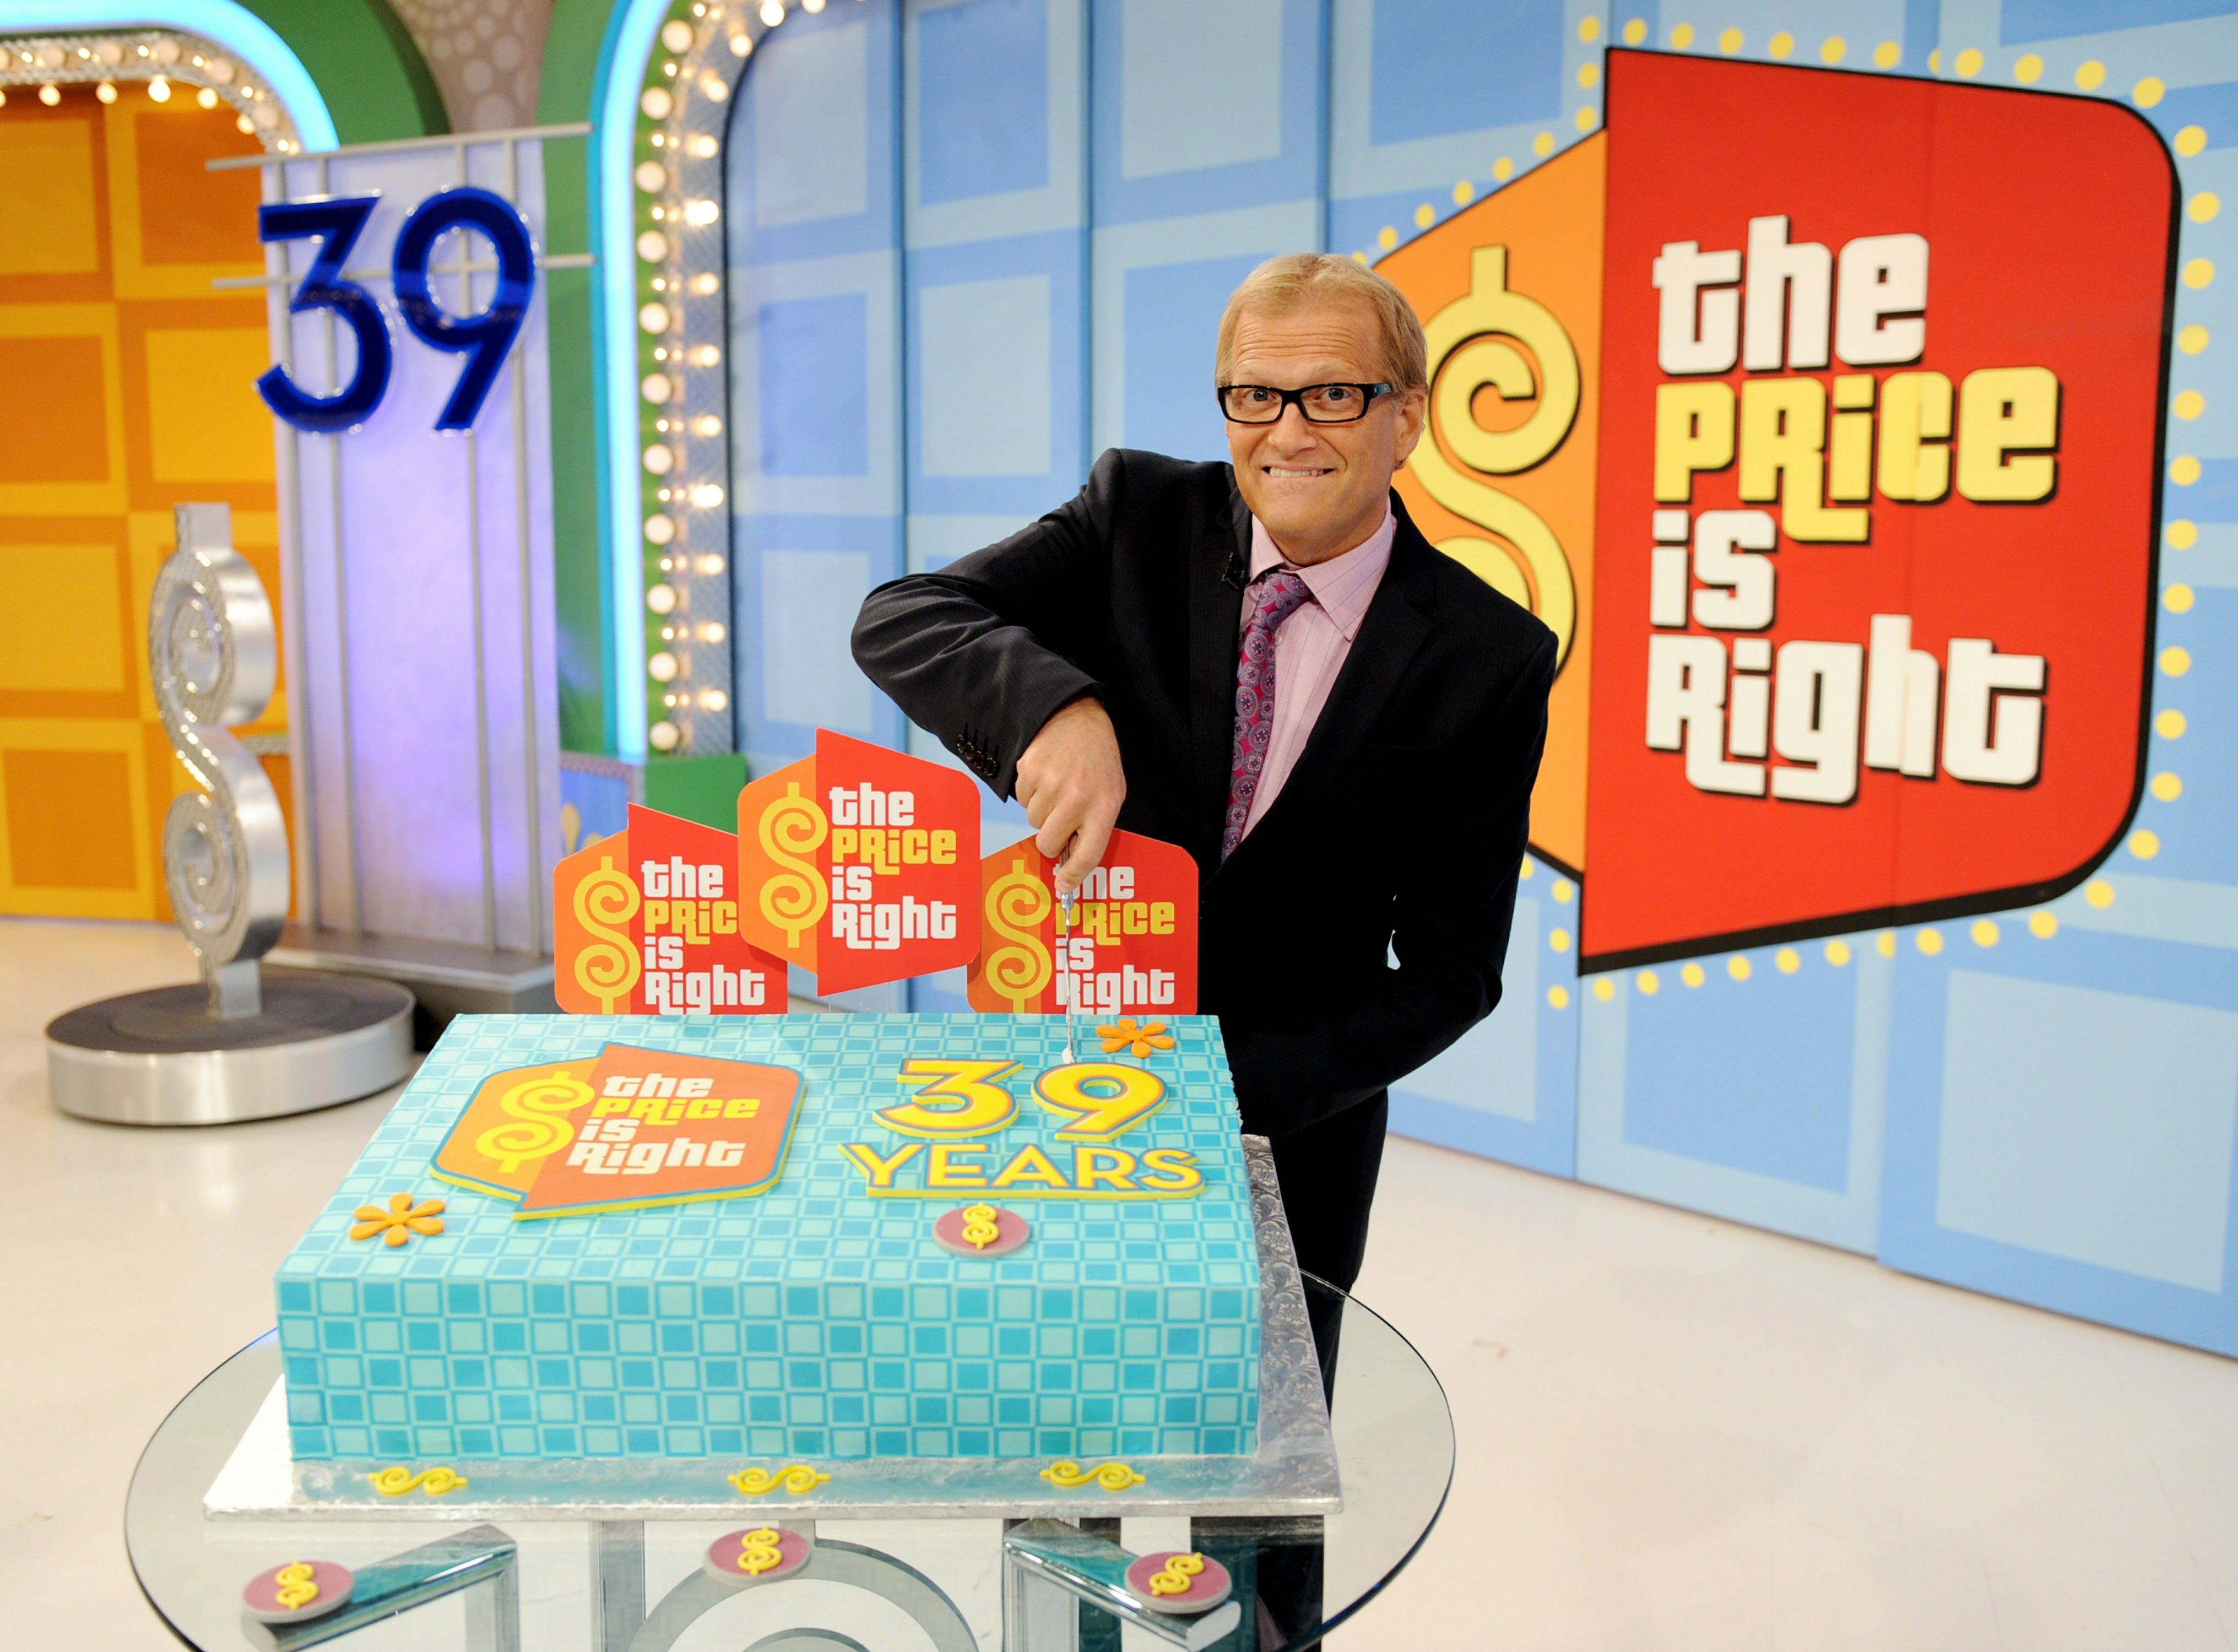 "ORG XMIT: 103117041 LOS ANGELES, CA - AUGUST 09:  Comedian/host Drew Carey appears onstage at the taping of the 39th season premiere of ""The Price is Right"" at Television City on August 9, 2010 in Los Angeles, California.  (Photo by Kevin Winter/Getty Images) GTY ID: 117041KW004_39th_Season_"